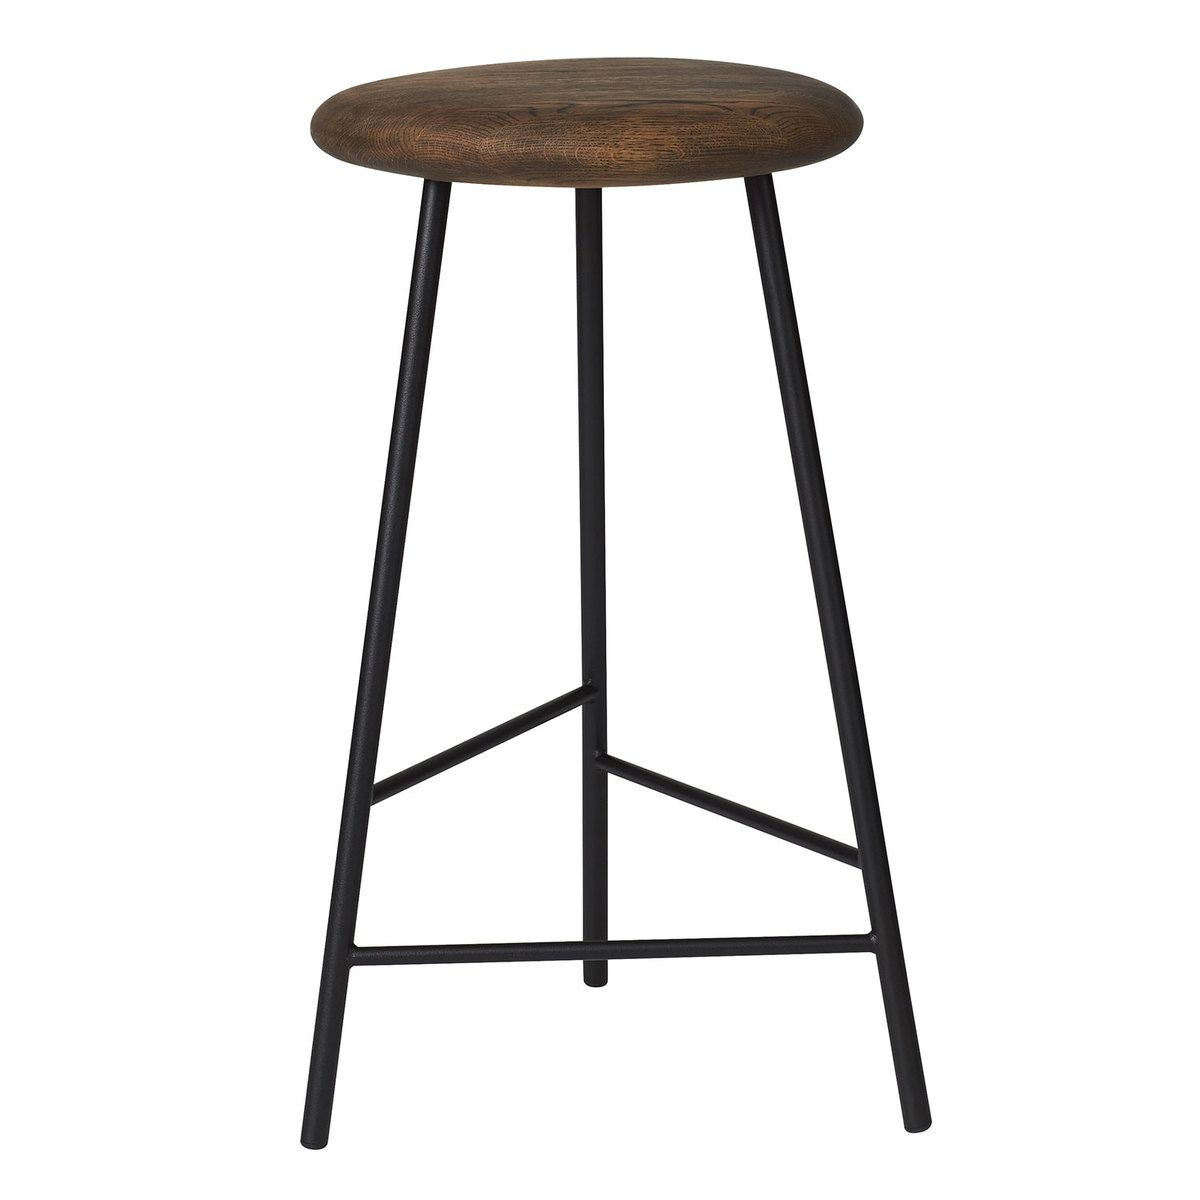 pebble bar stool by warm nordic was named after its smooth slightly rh pinterest com